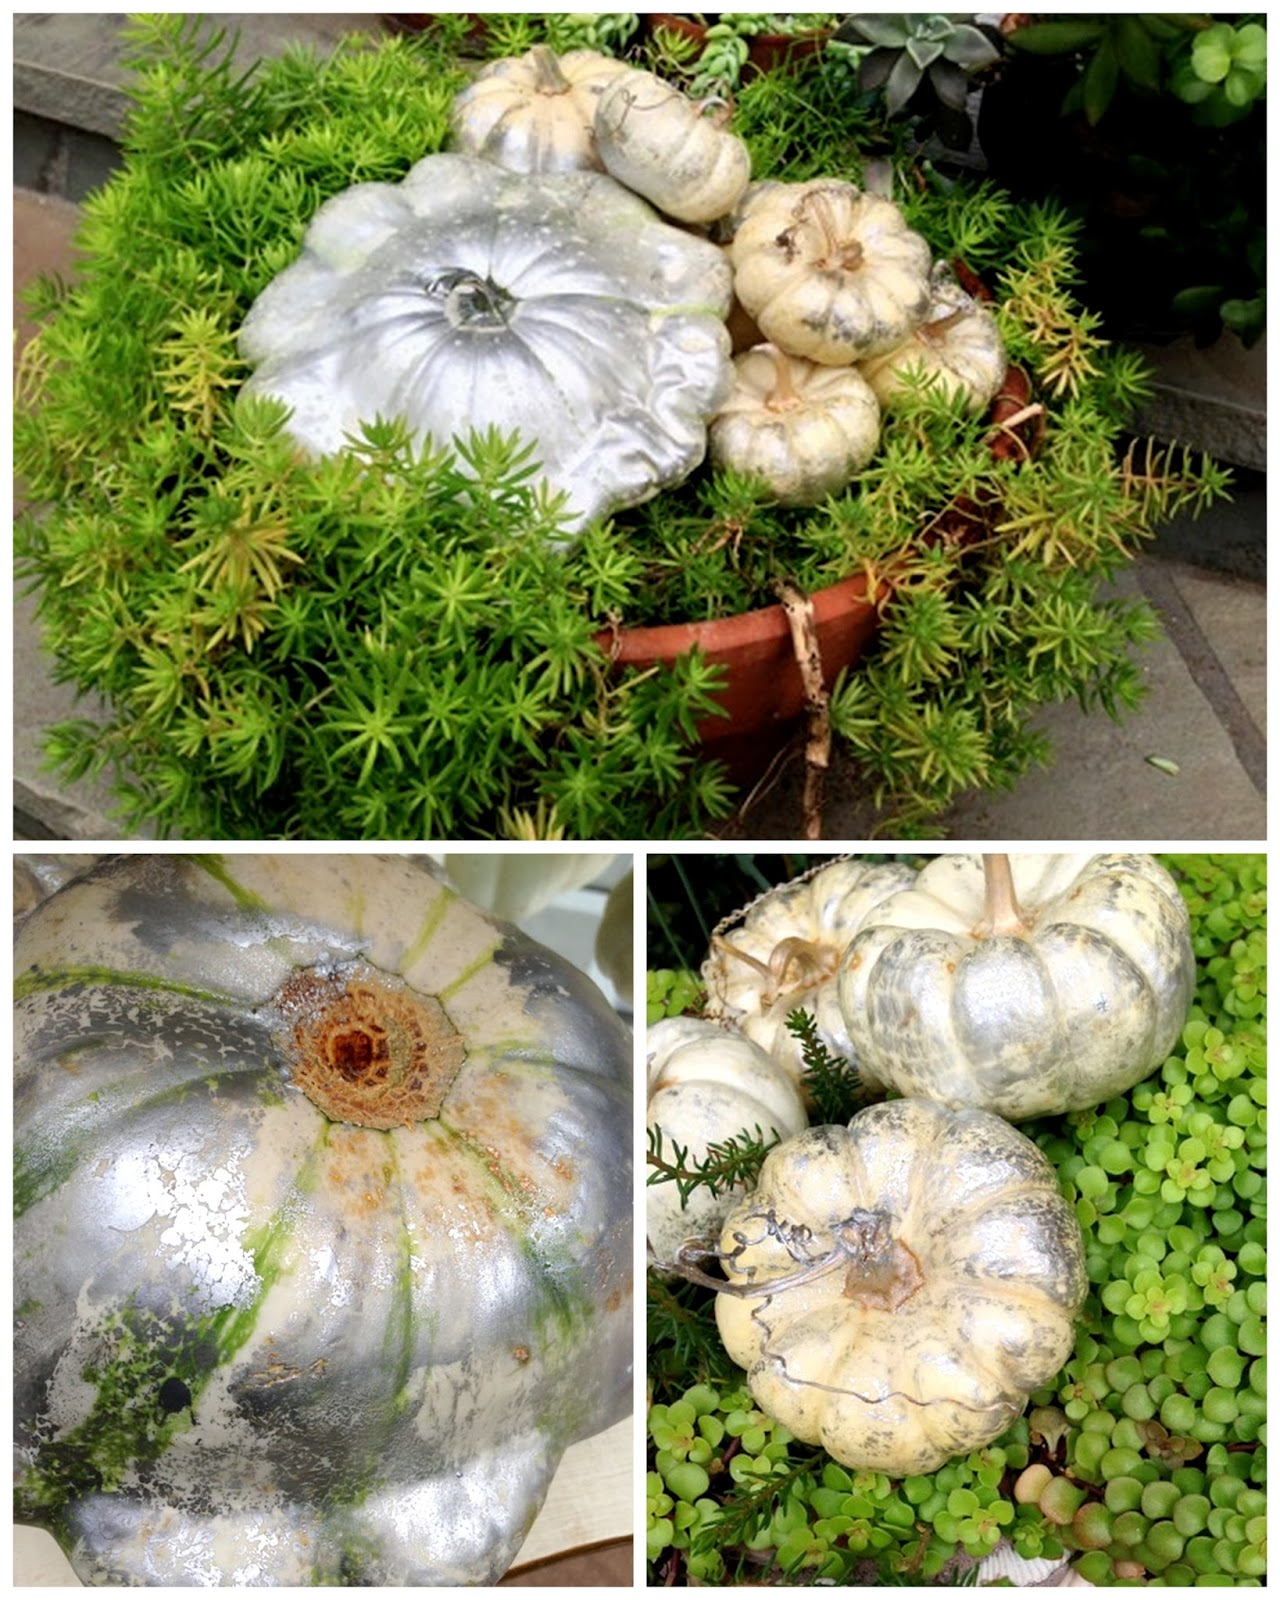 Marblize Pumpkins for the Holidays 3